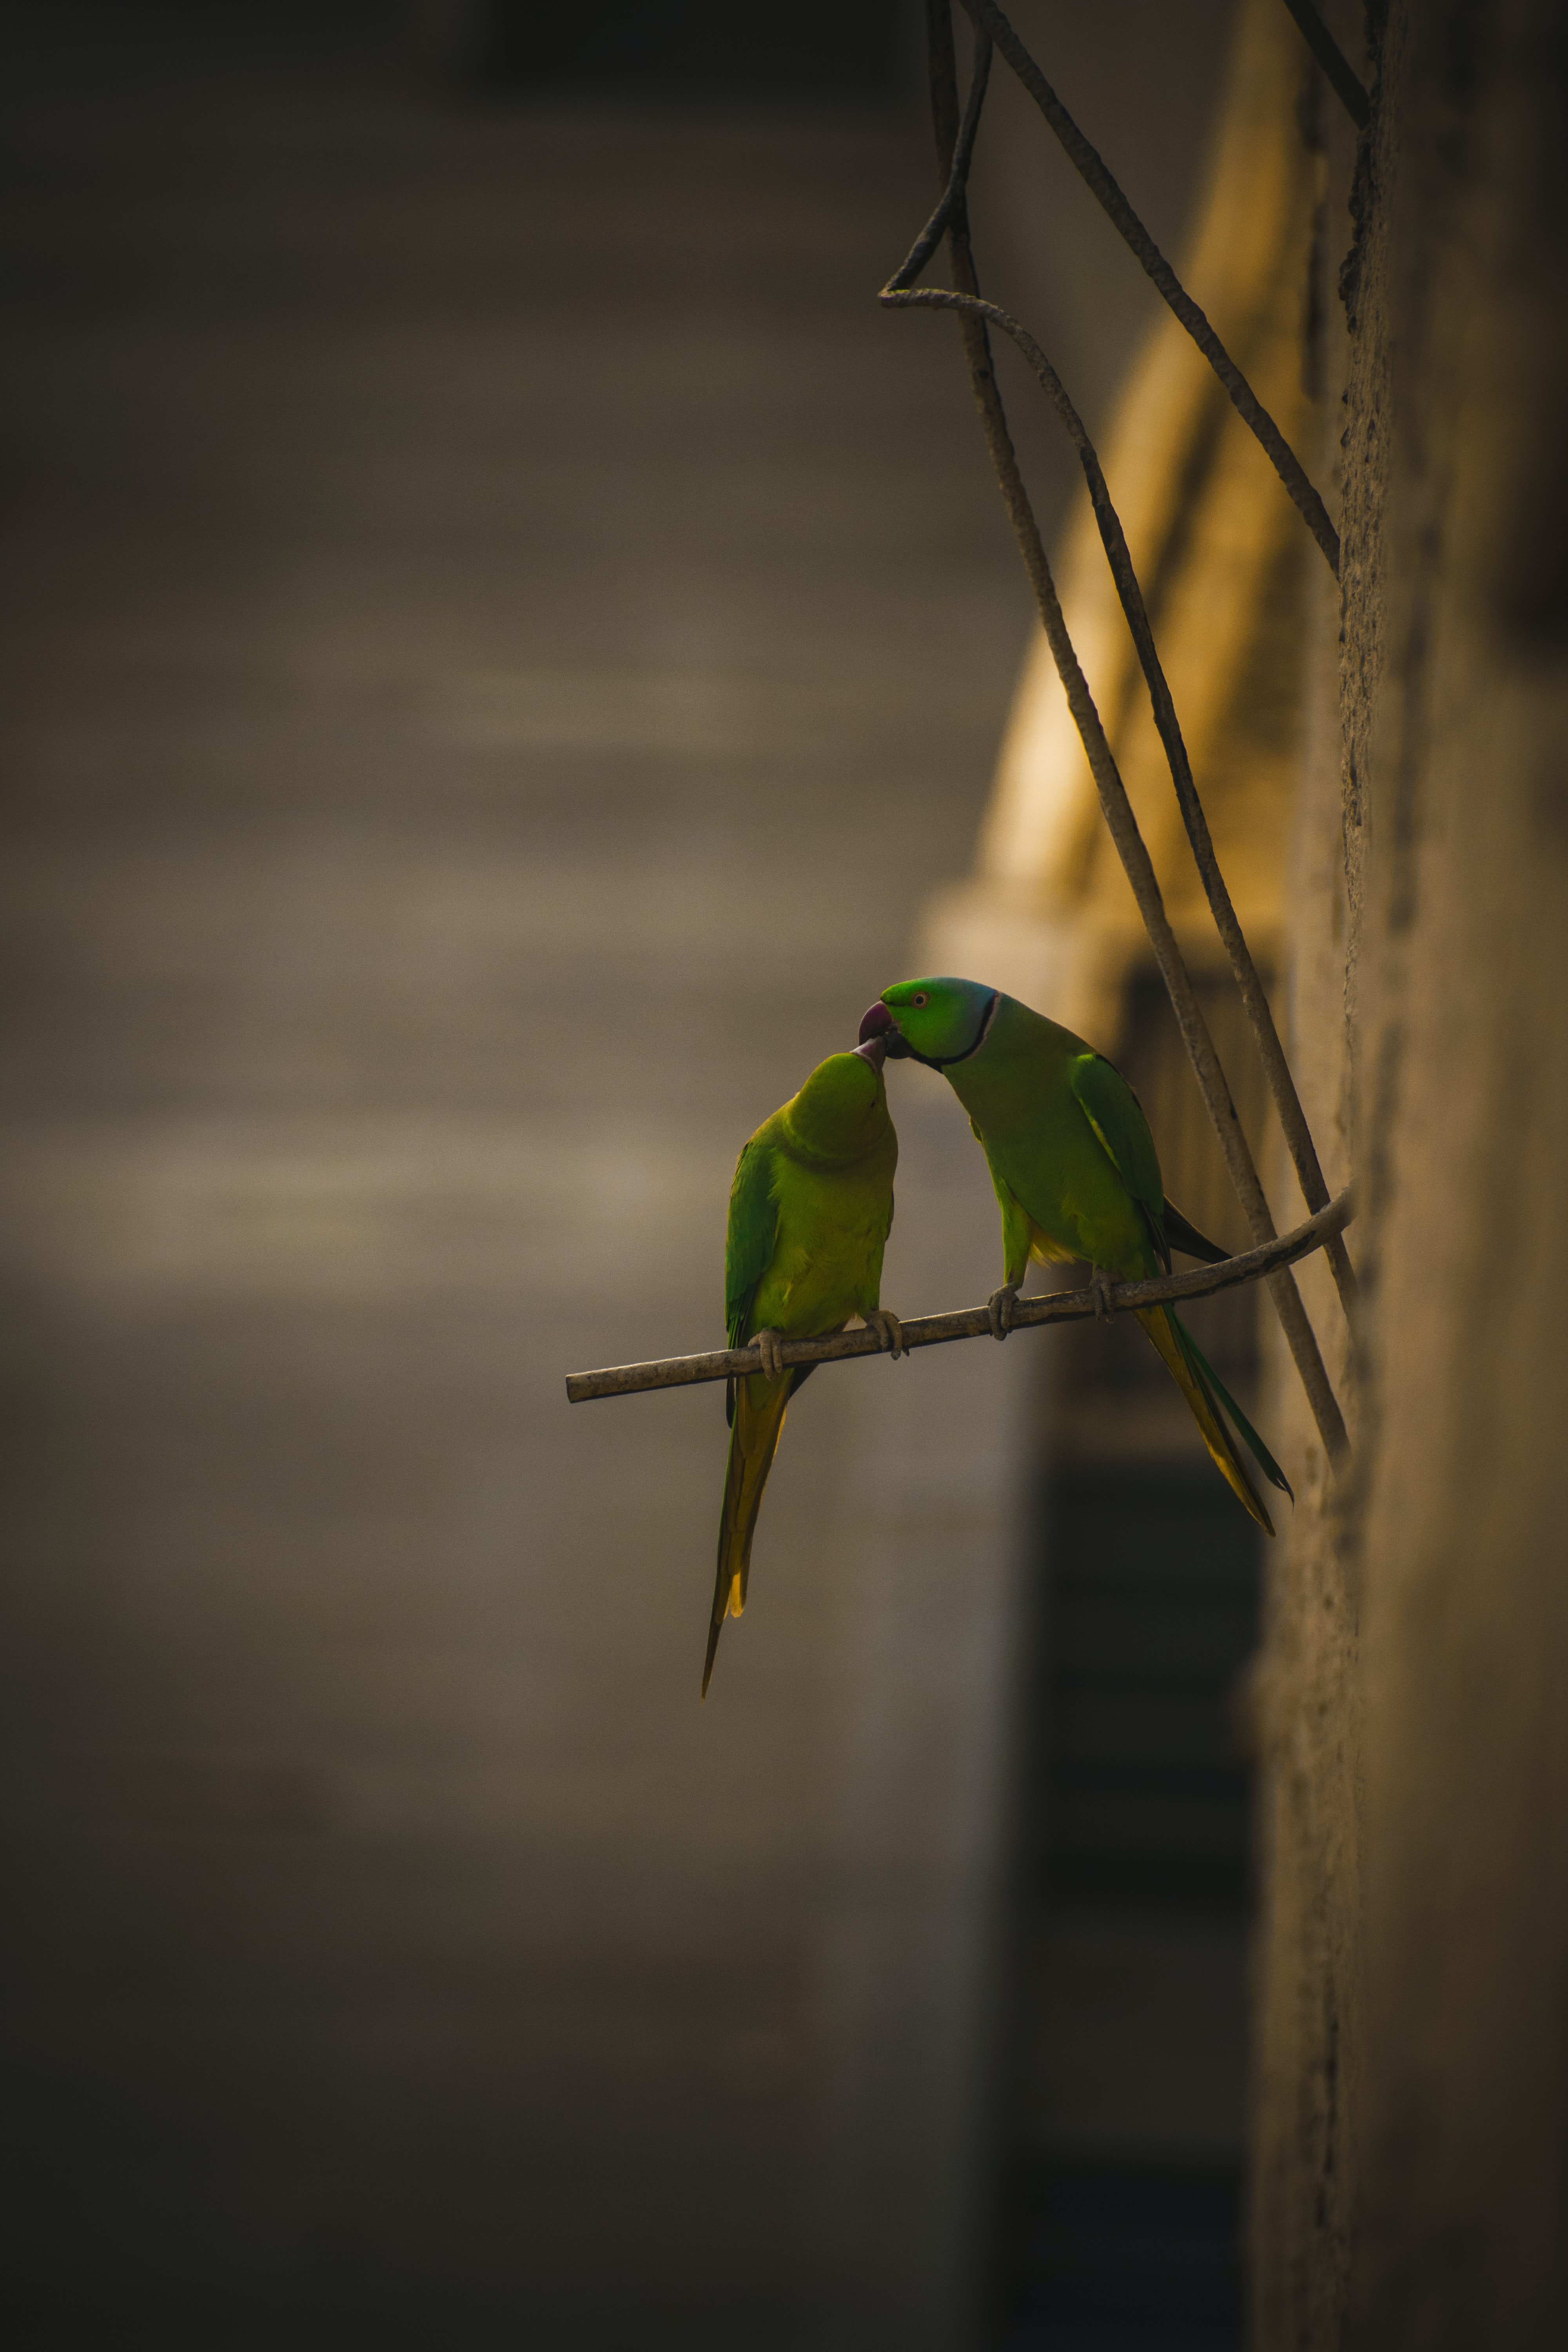 two rose-ringed parakeets perched on metal bar